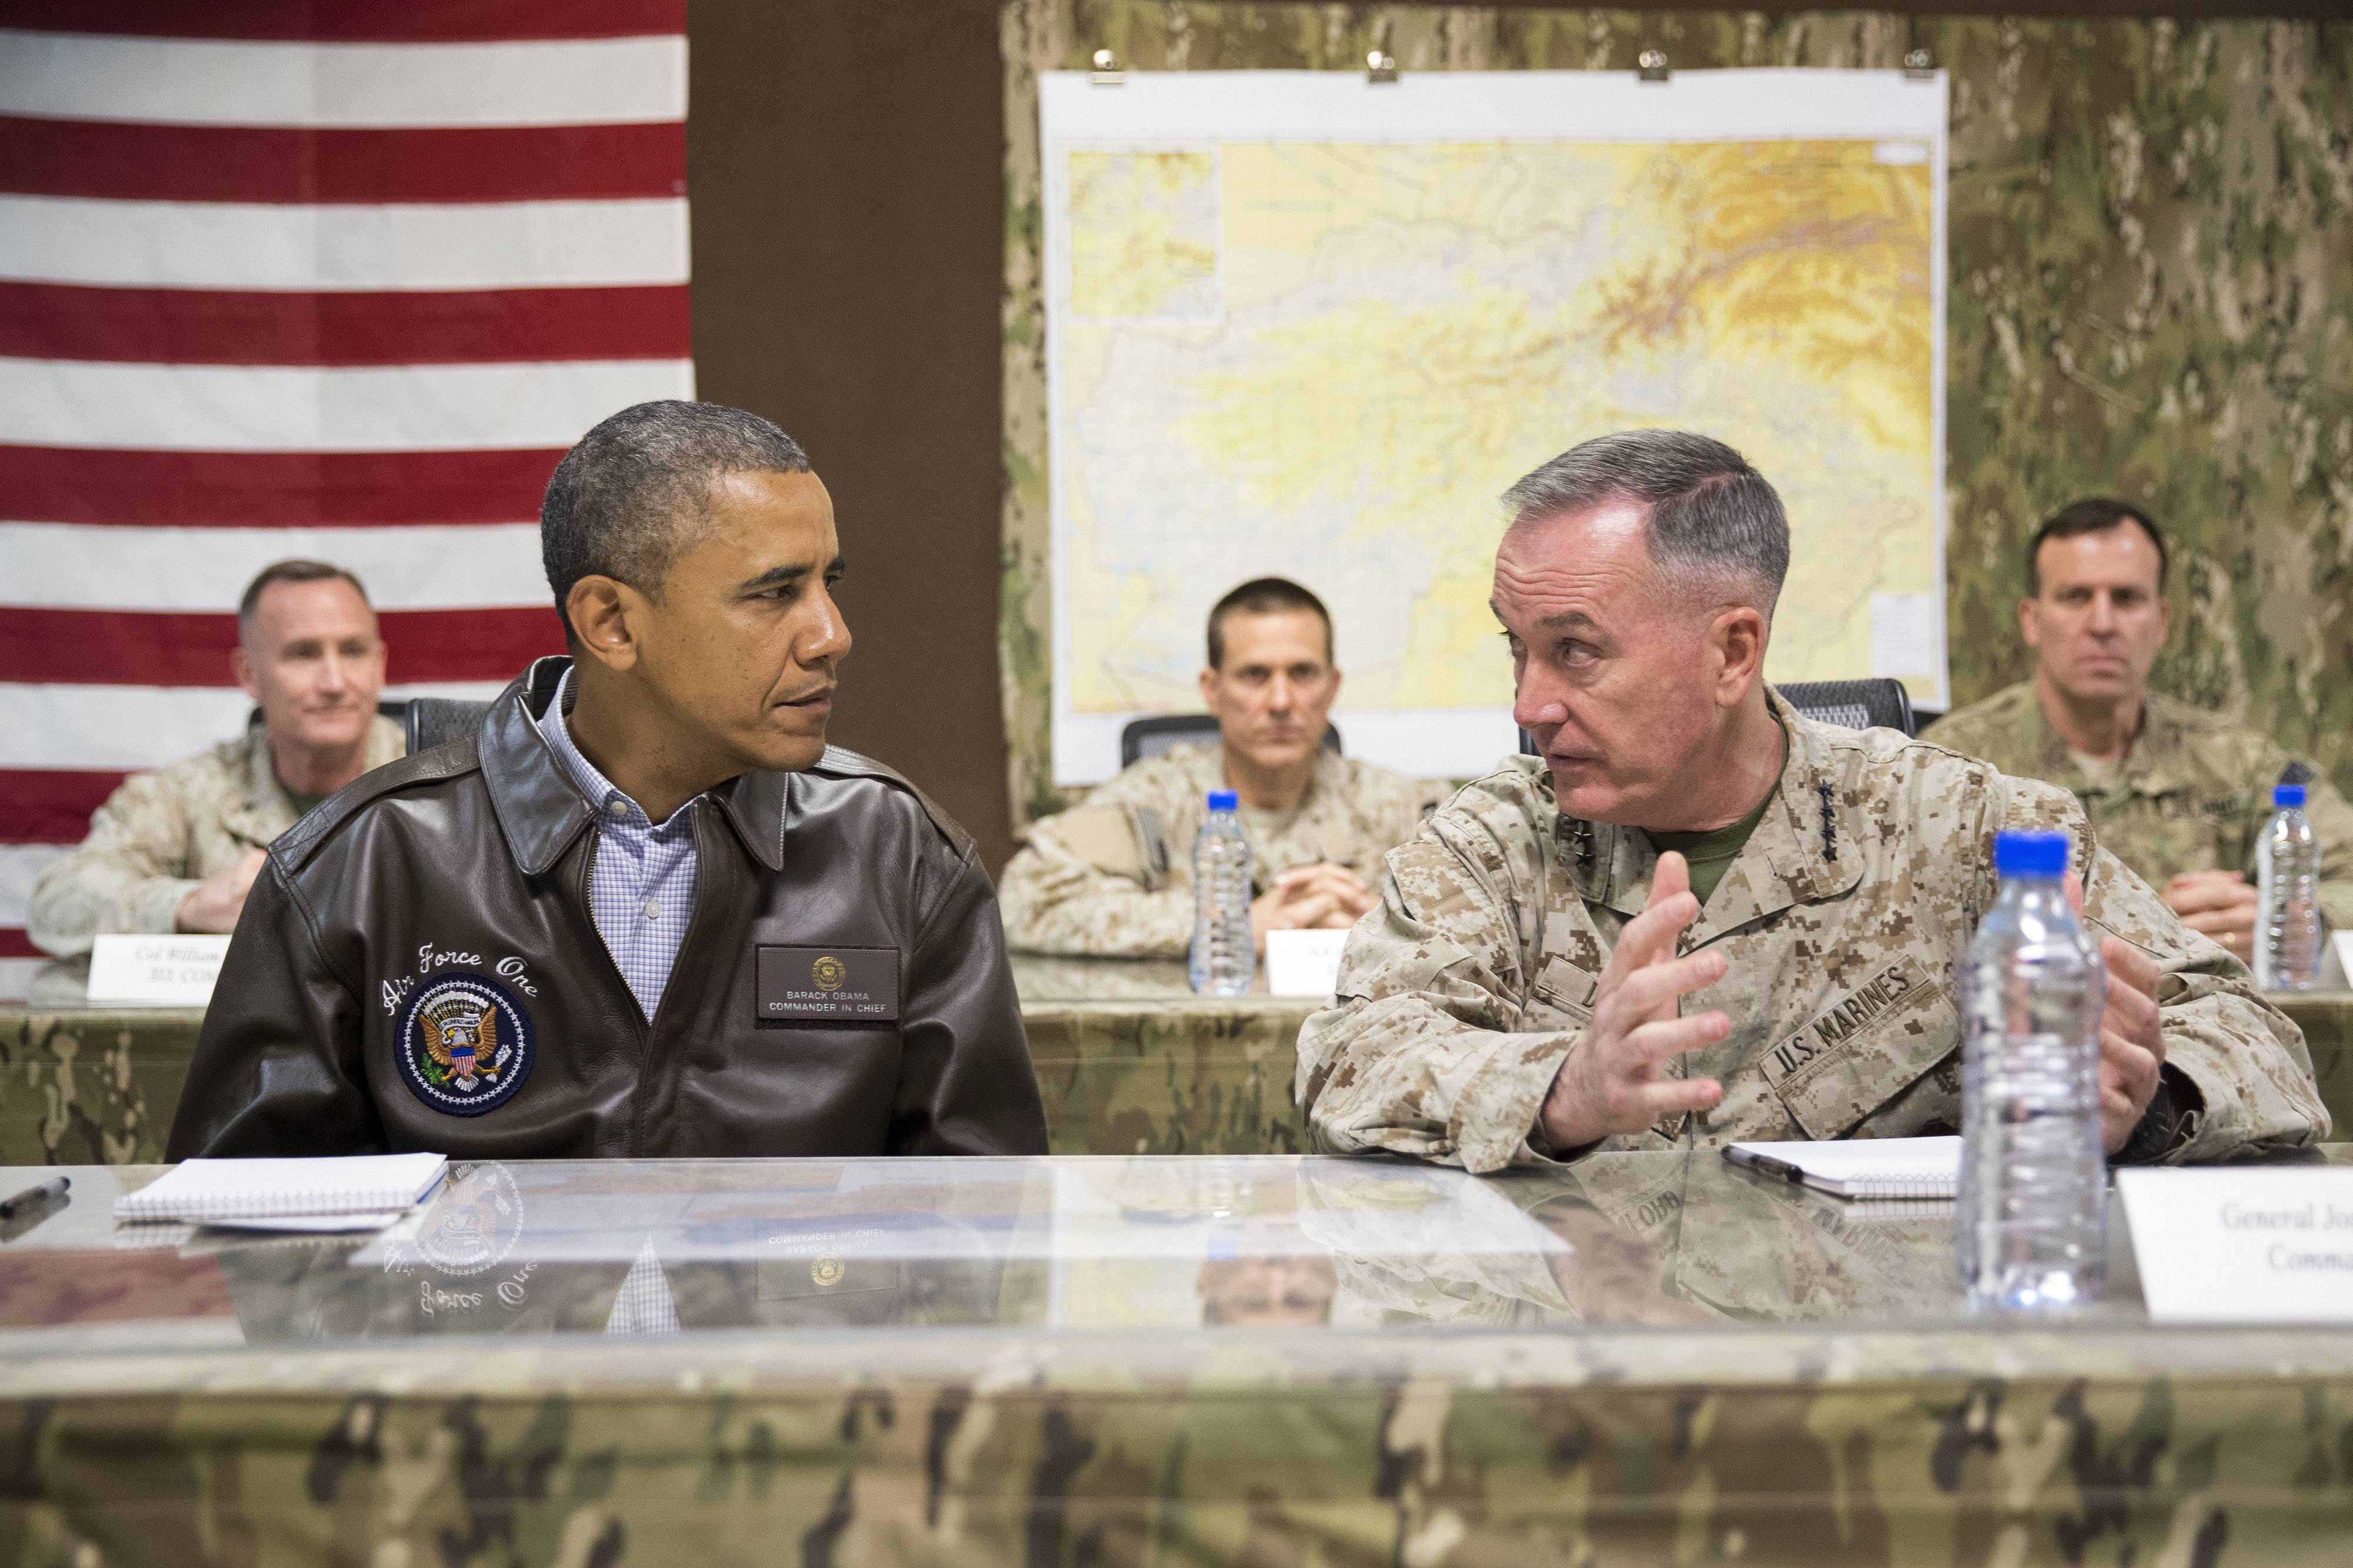 President Barack Obama as he is briefed by Marine General Joseph Dunford, commander of the US-led International Security Assistance Force (ISAF), right, after arriving at Bagram Air Field for an unannounced visit north of Kabul, Afghanistan. The Afghan election crisis and unraveling of Iraq has lawmakers and others thinking President Barack Obama should re-think his decision to withdrawal virtually all U.S. troops from Afghanistan by the close of 2016.